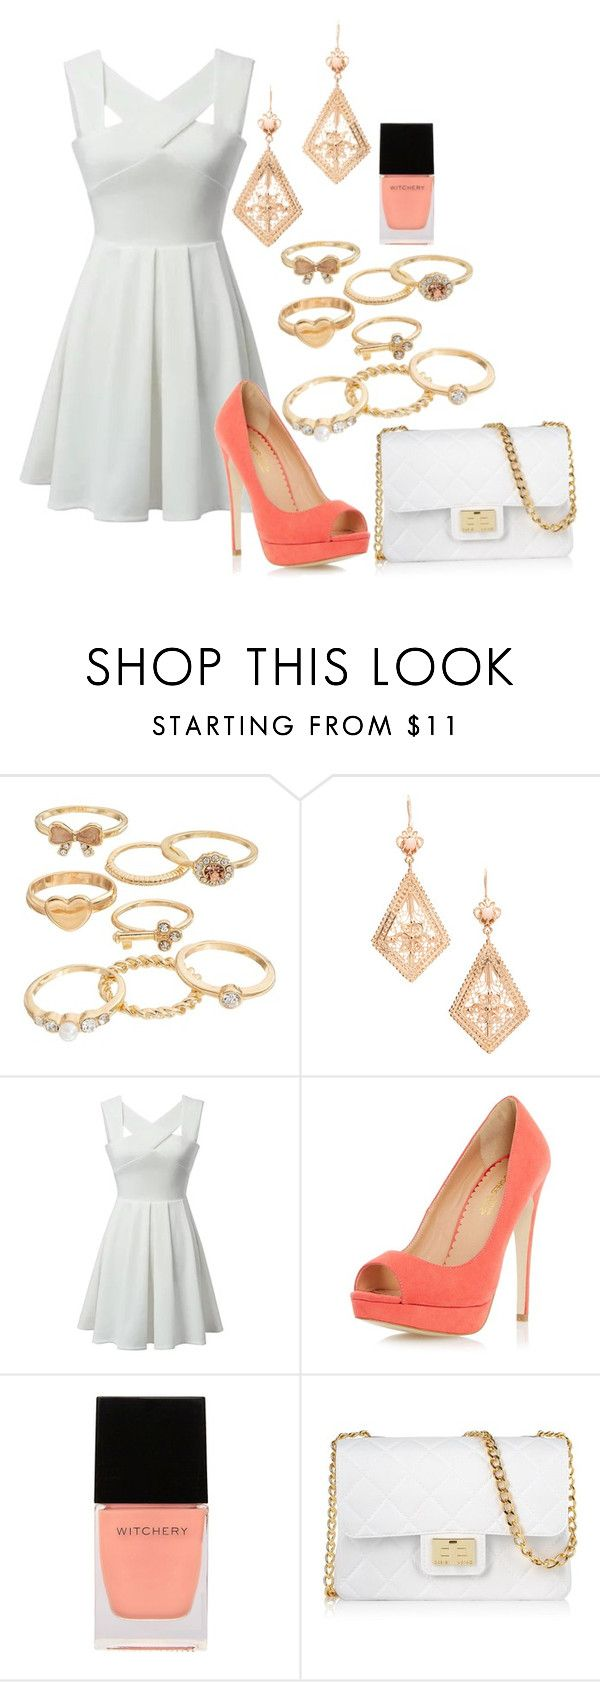 """Up on a hill across the blue lake that where I had my first heart break"" by chloetang ❤ liked on Polyvore featuring Mudd, Dorothy Perkins, Witchery and Design Inverso"